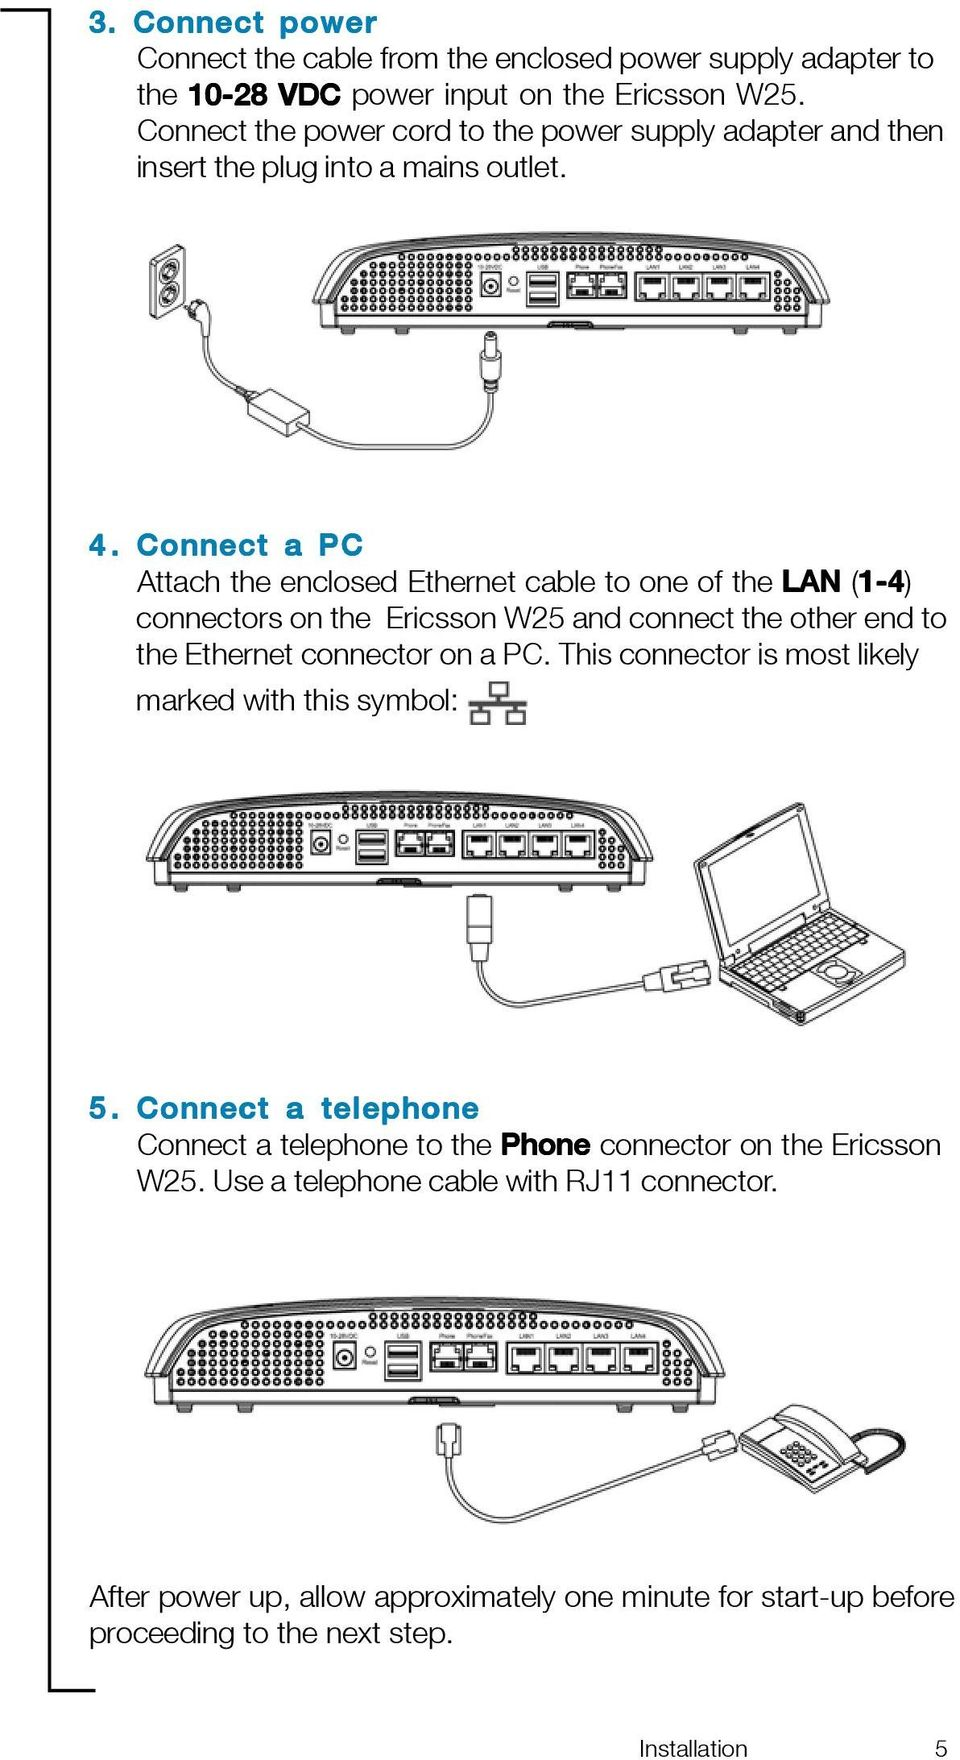 Connect a PC Attach the enclosed Ethernet cable to one of the LAN (1-4 1-4) connectors on the Ericsson W25 and connect the other end to the Ethernet connector on a PC.